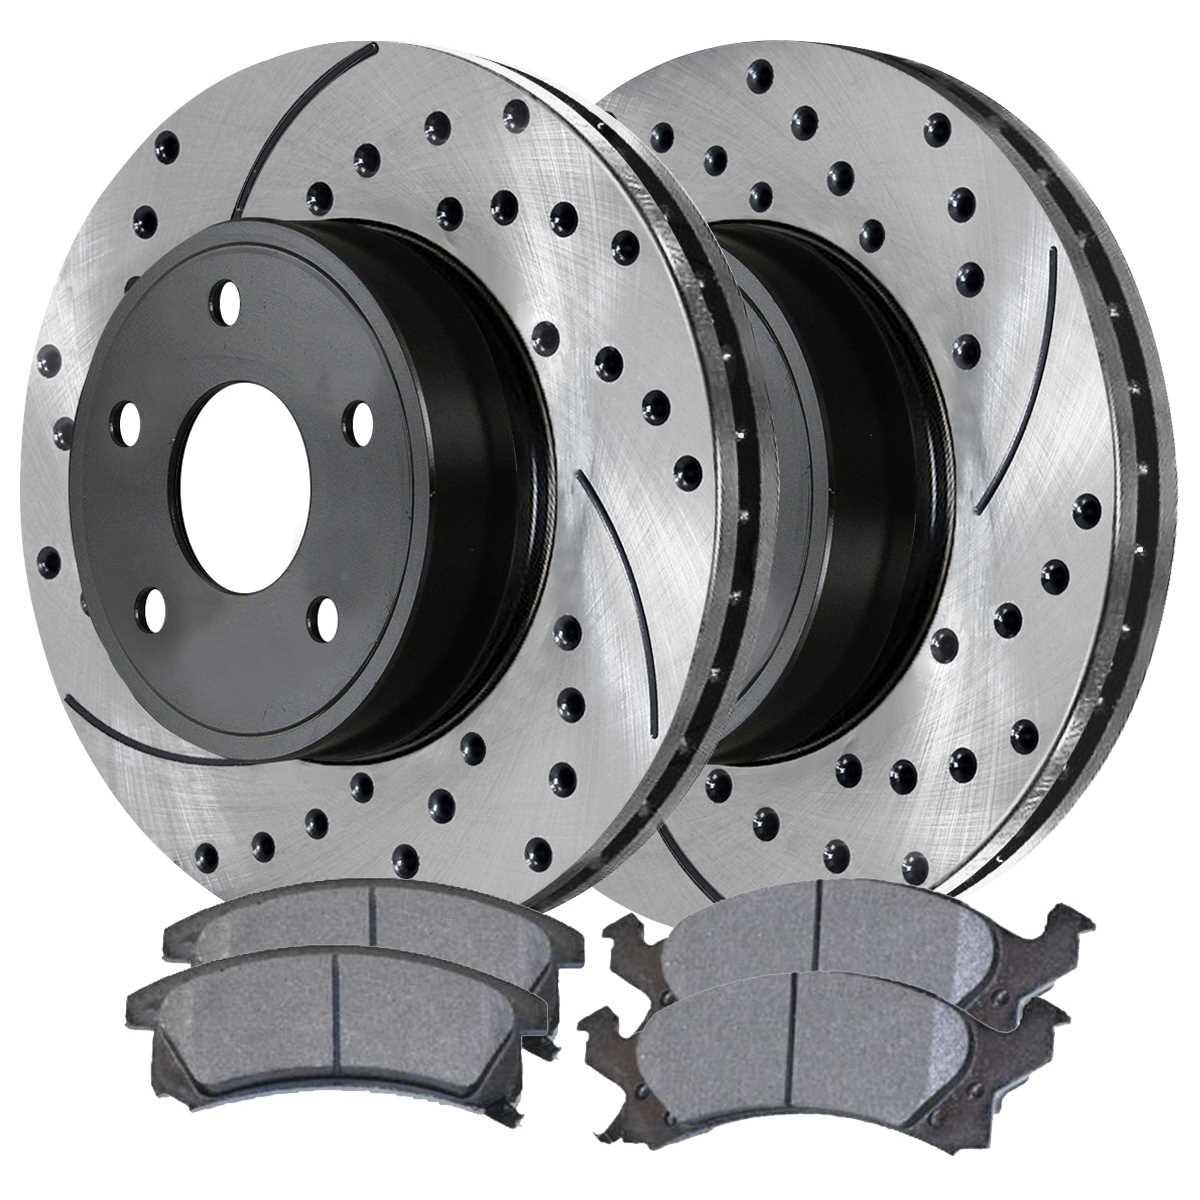 AutoShack PR65041DSZPR Pair of 2 Rear Driver and Passenger Side Drilled and Slotted Disc Brake Rotors Replacement for 2000-2005 Chevrolet Impala 1999-2004 2005 Pontiac Grand Am 1997-2003 Grand Prix